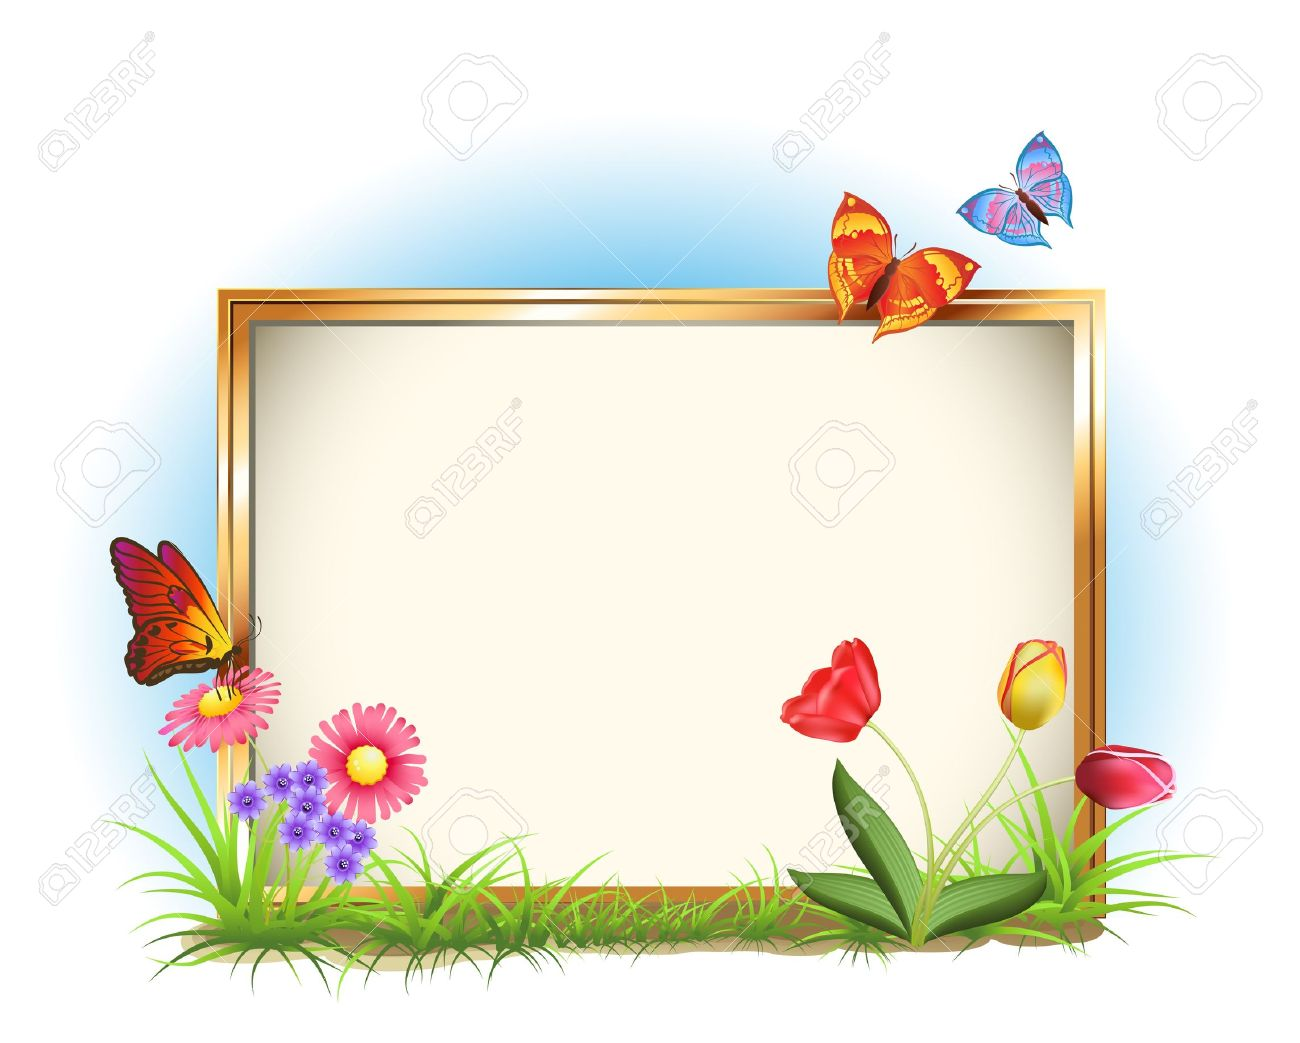 picture frame with spring flowers and butterflies royalty free